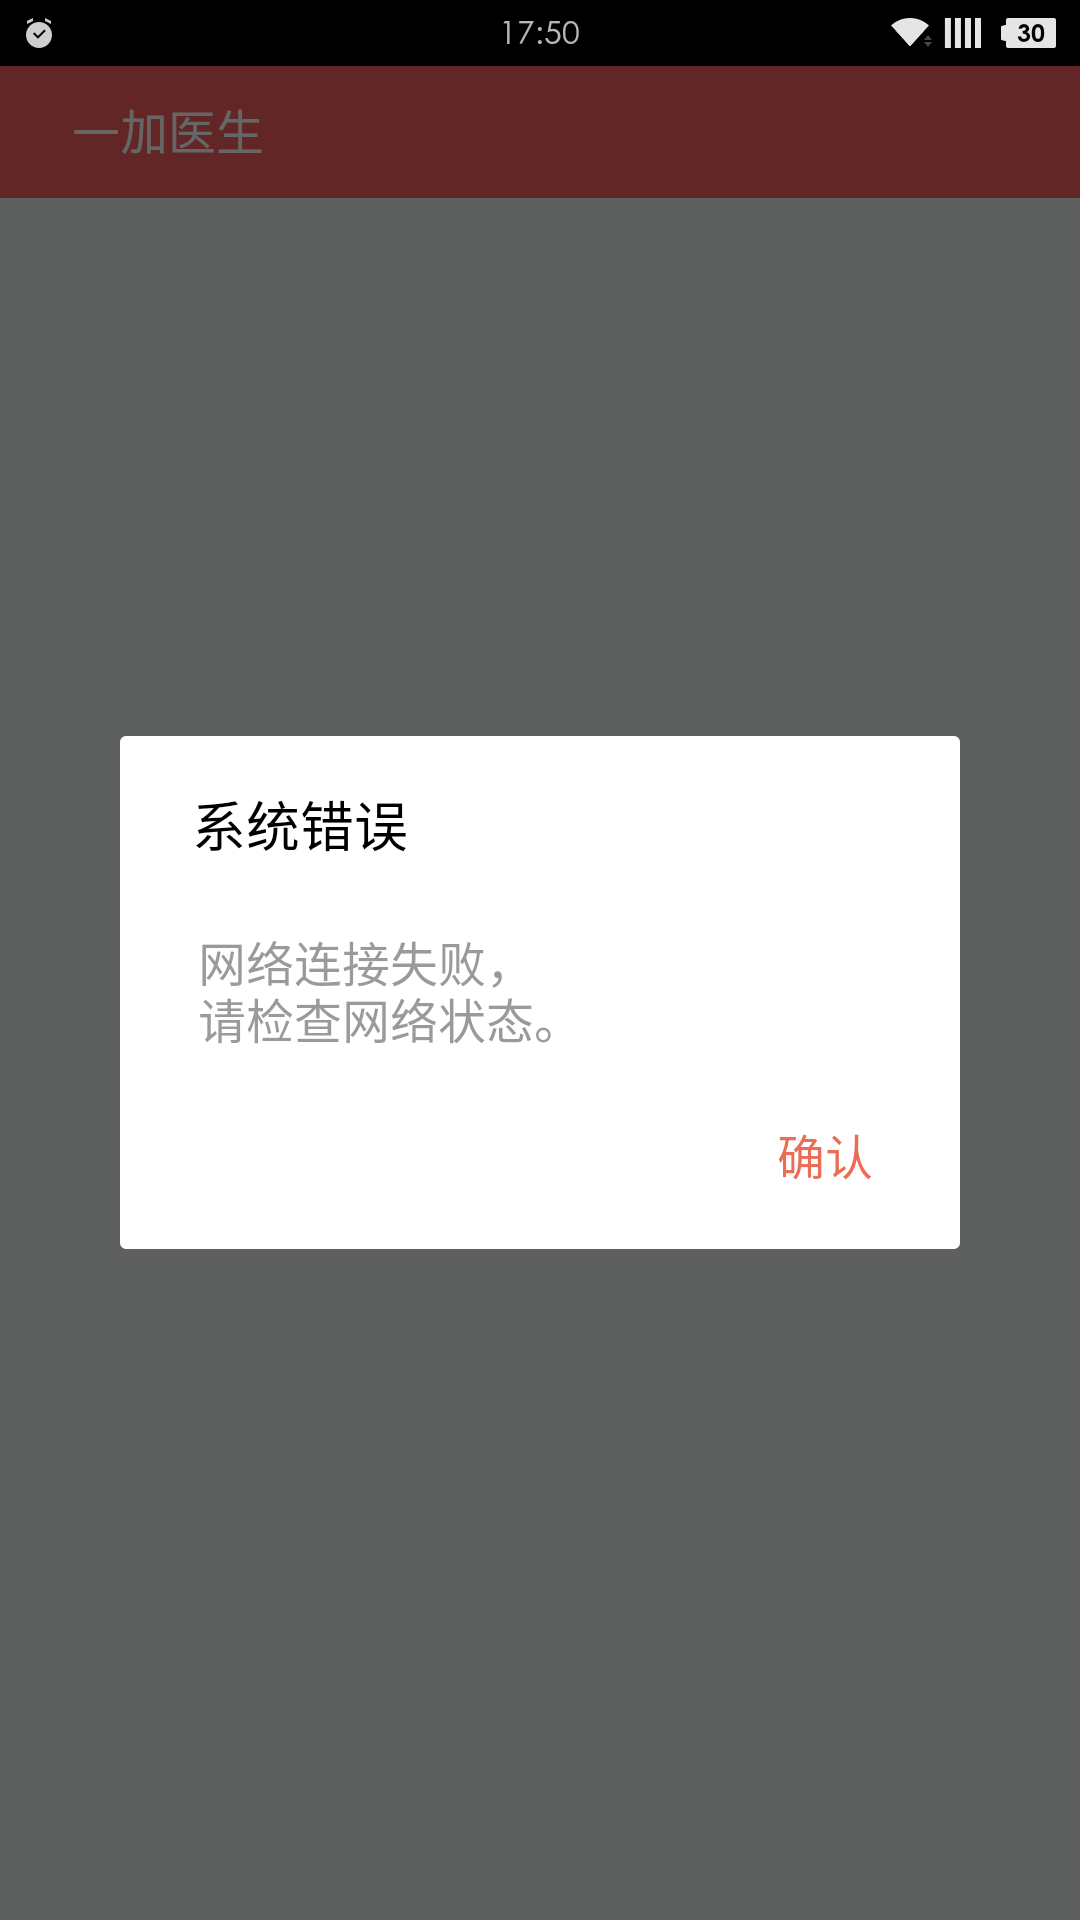 Screenshot_2015-12-14-17-50-07.png